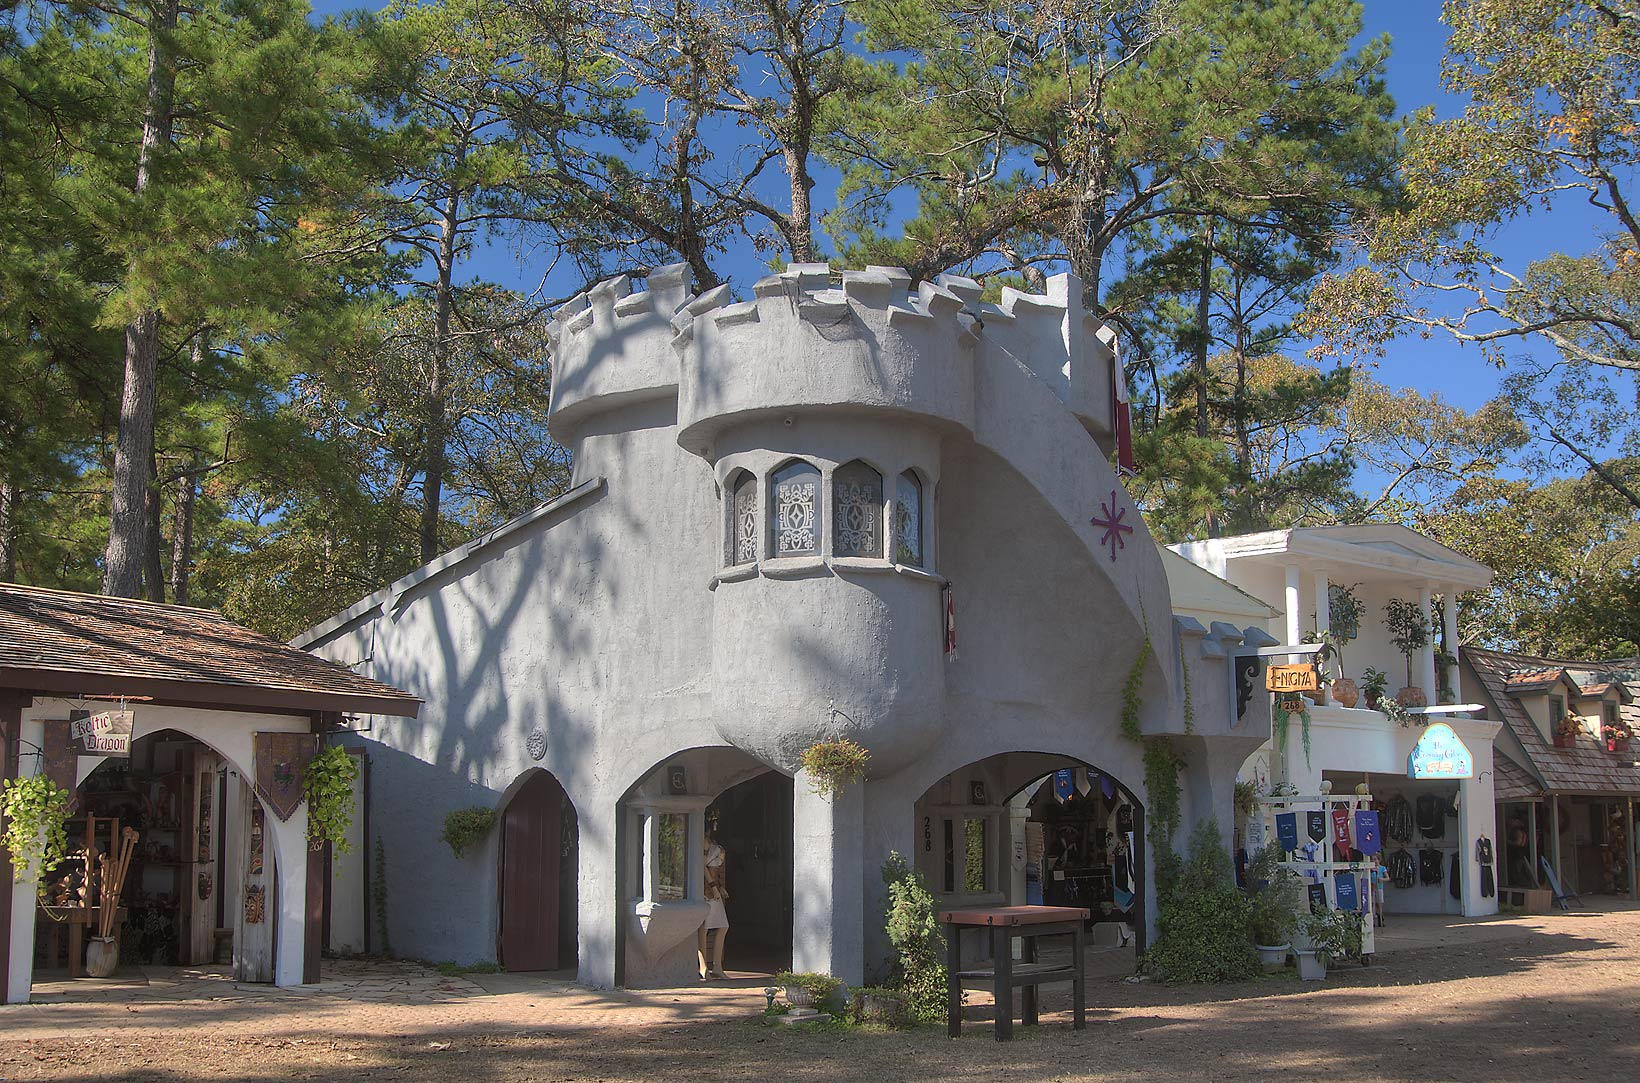 A shop styled as a fortress at Texas Renaissance Festival. Plantersville, Texas